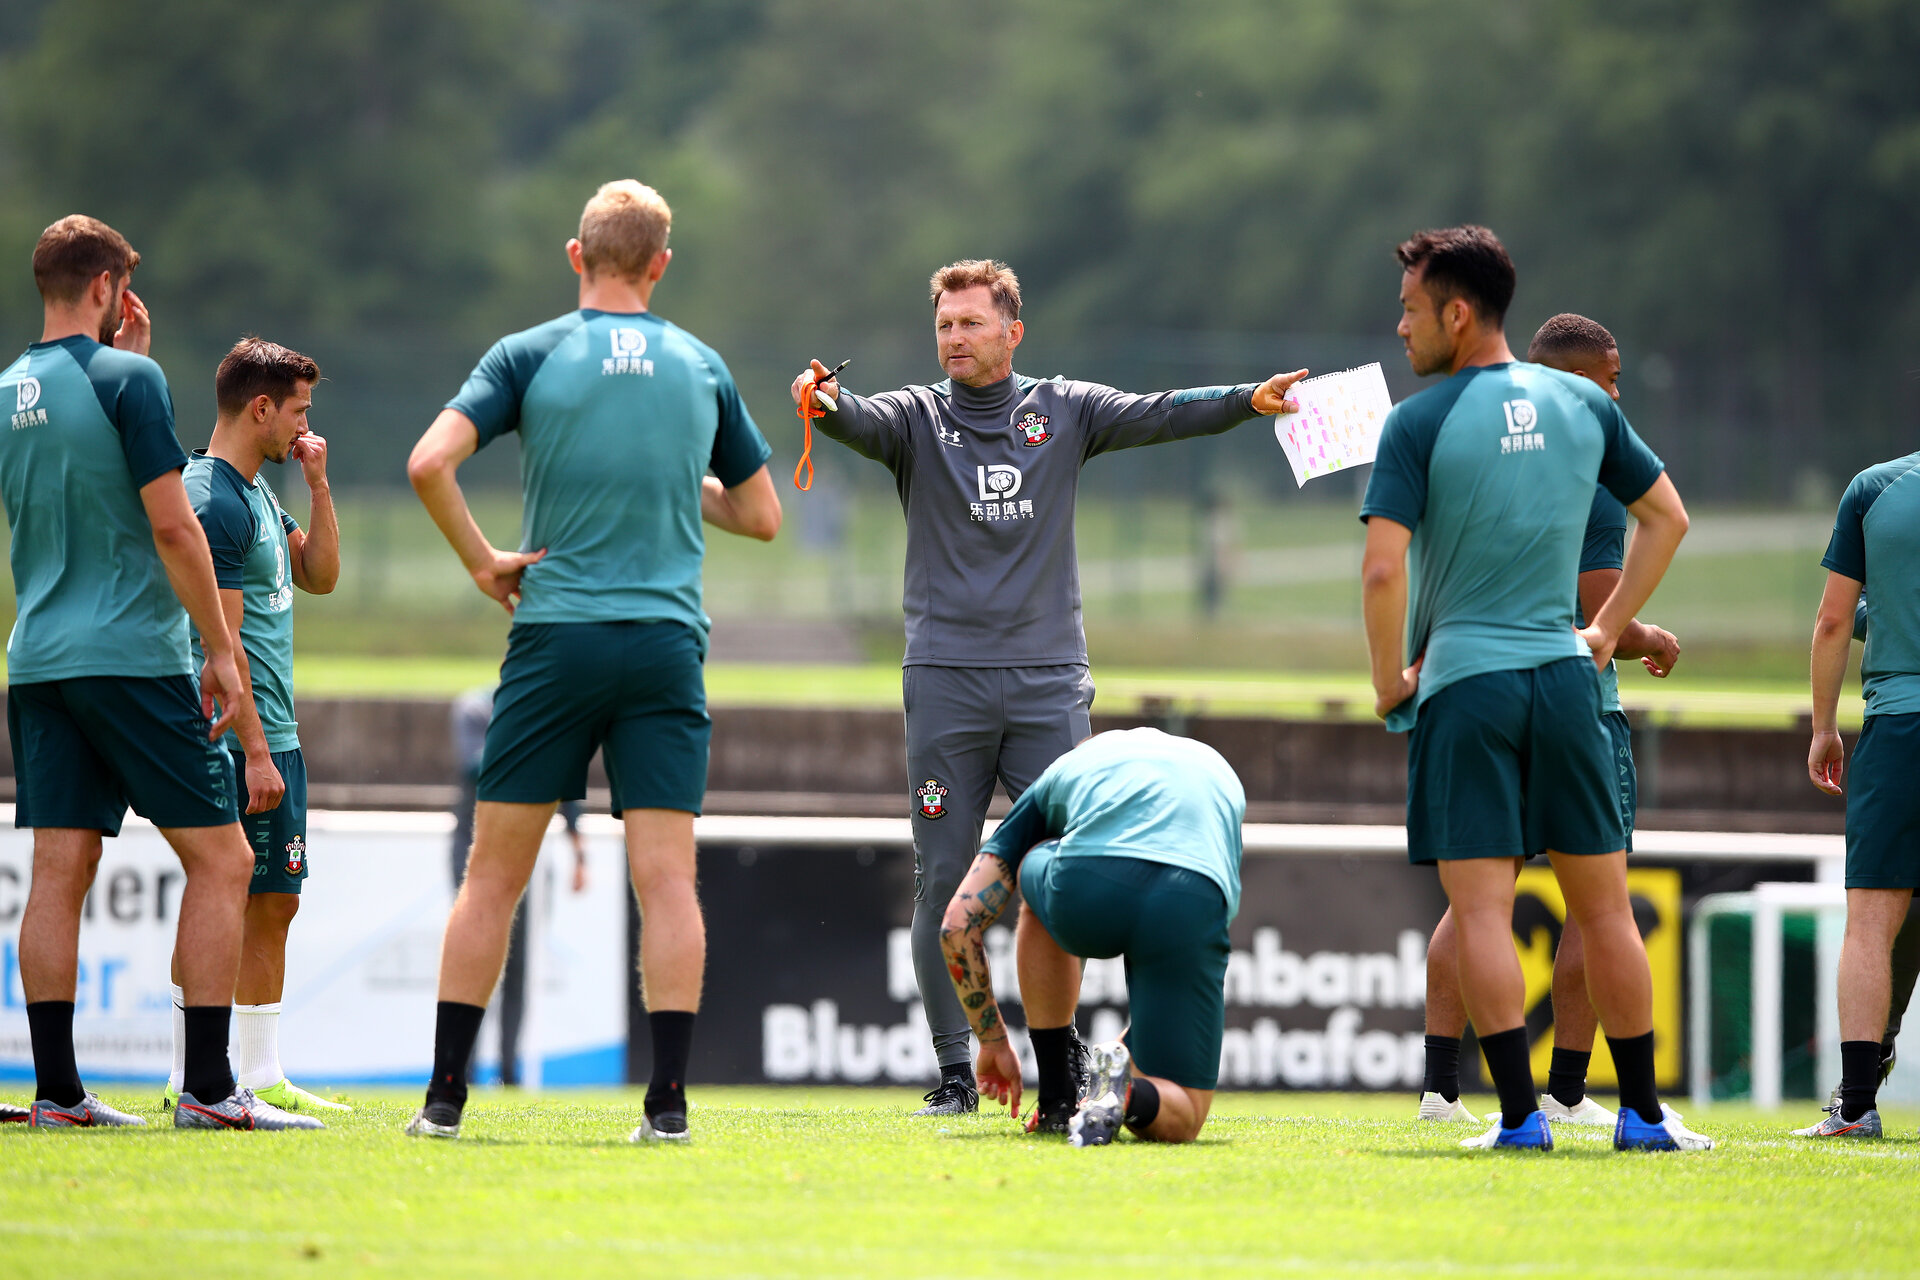 SCHRUNS, AUSTRIA - JULY 09: Ralph Hasenhuttl during a Southampton FC pre-season training session, on July 09, 2019 in Schruns, Austria. (Photo by Matt Watson/Southampton FC via Getty Images)